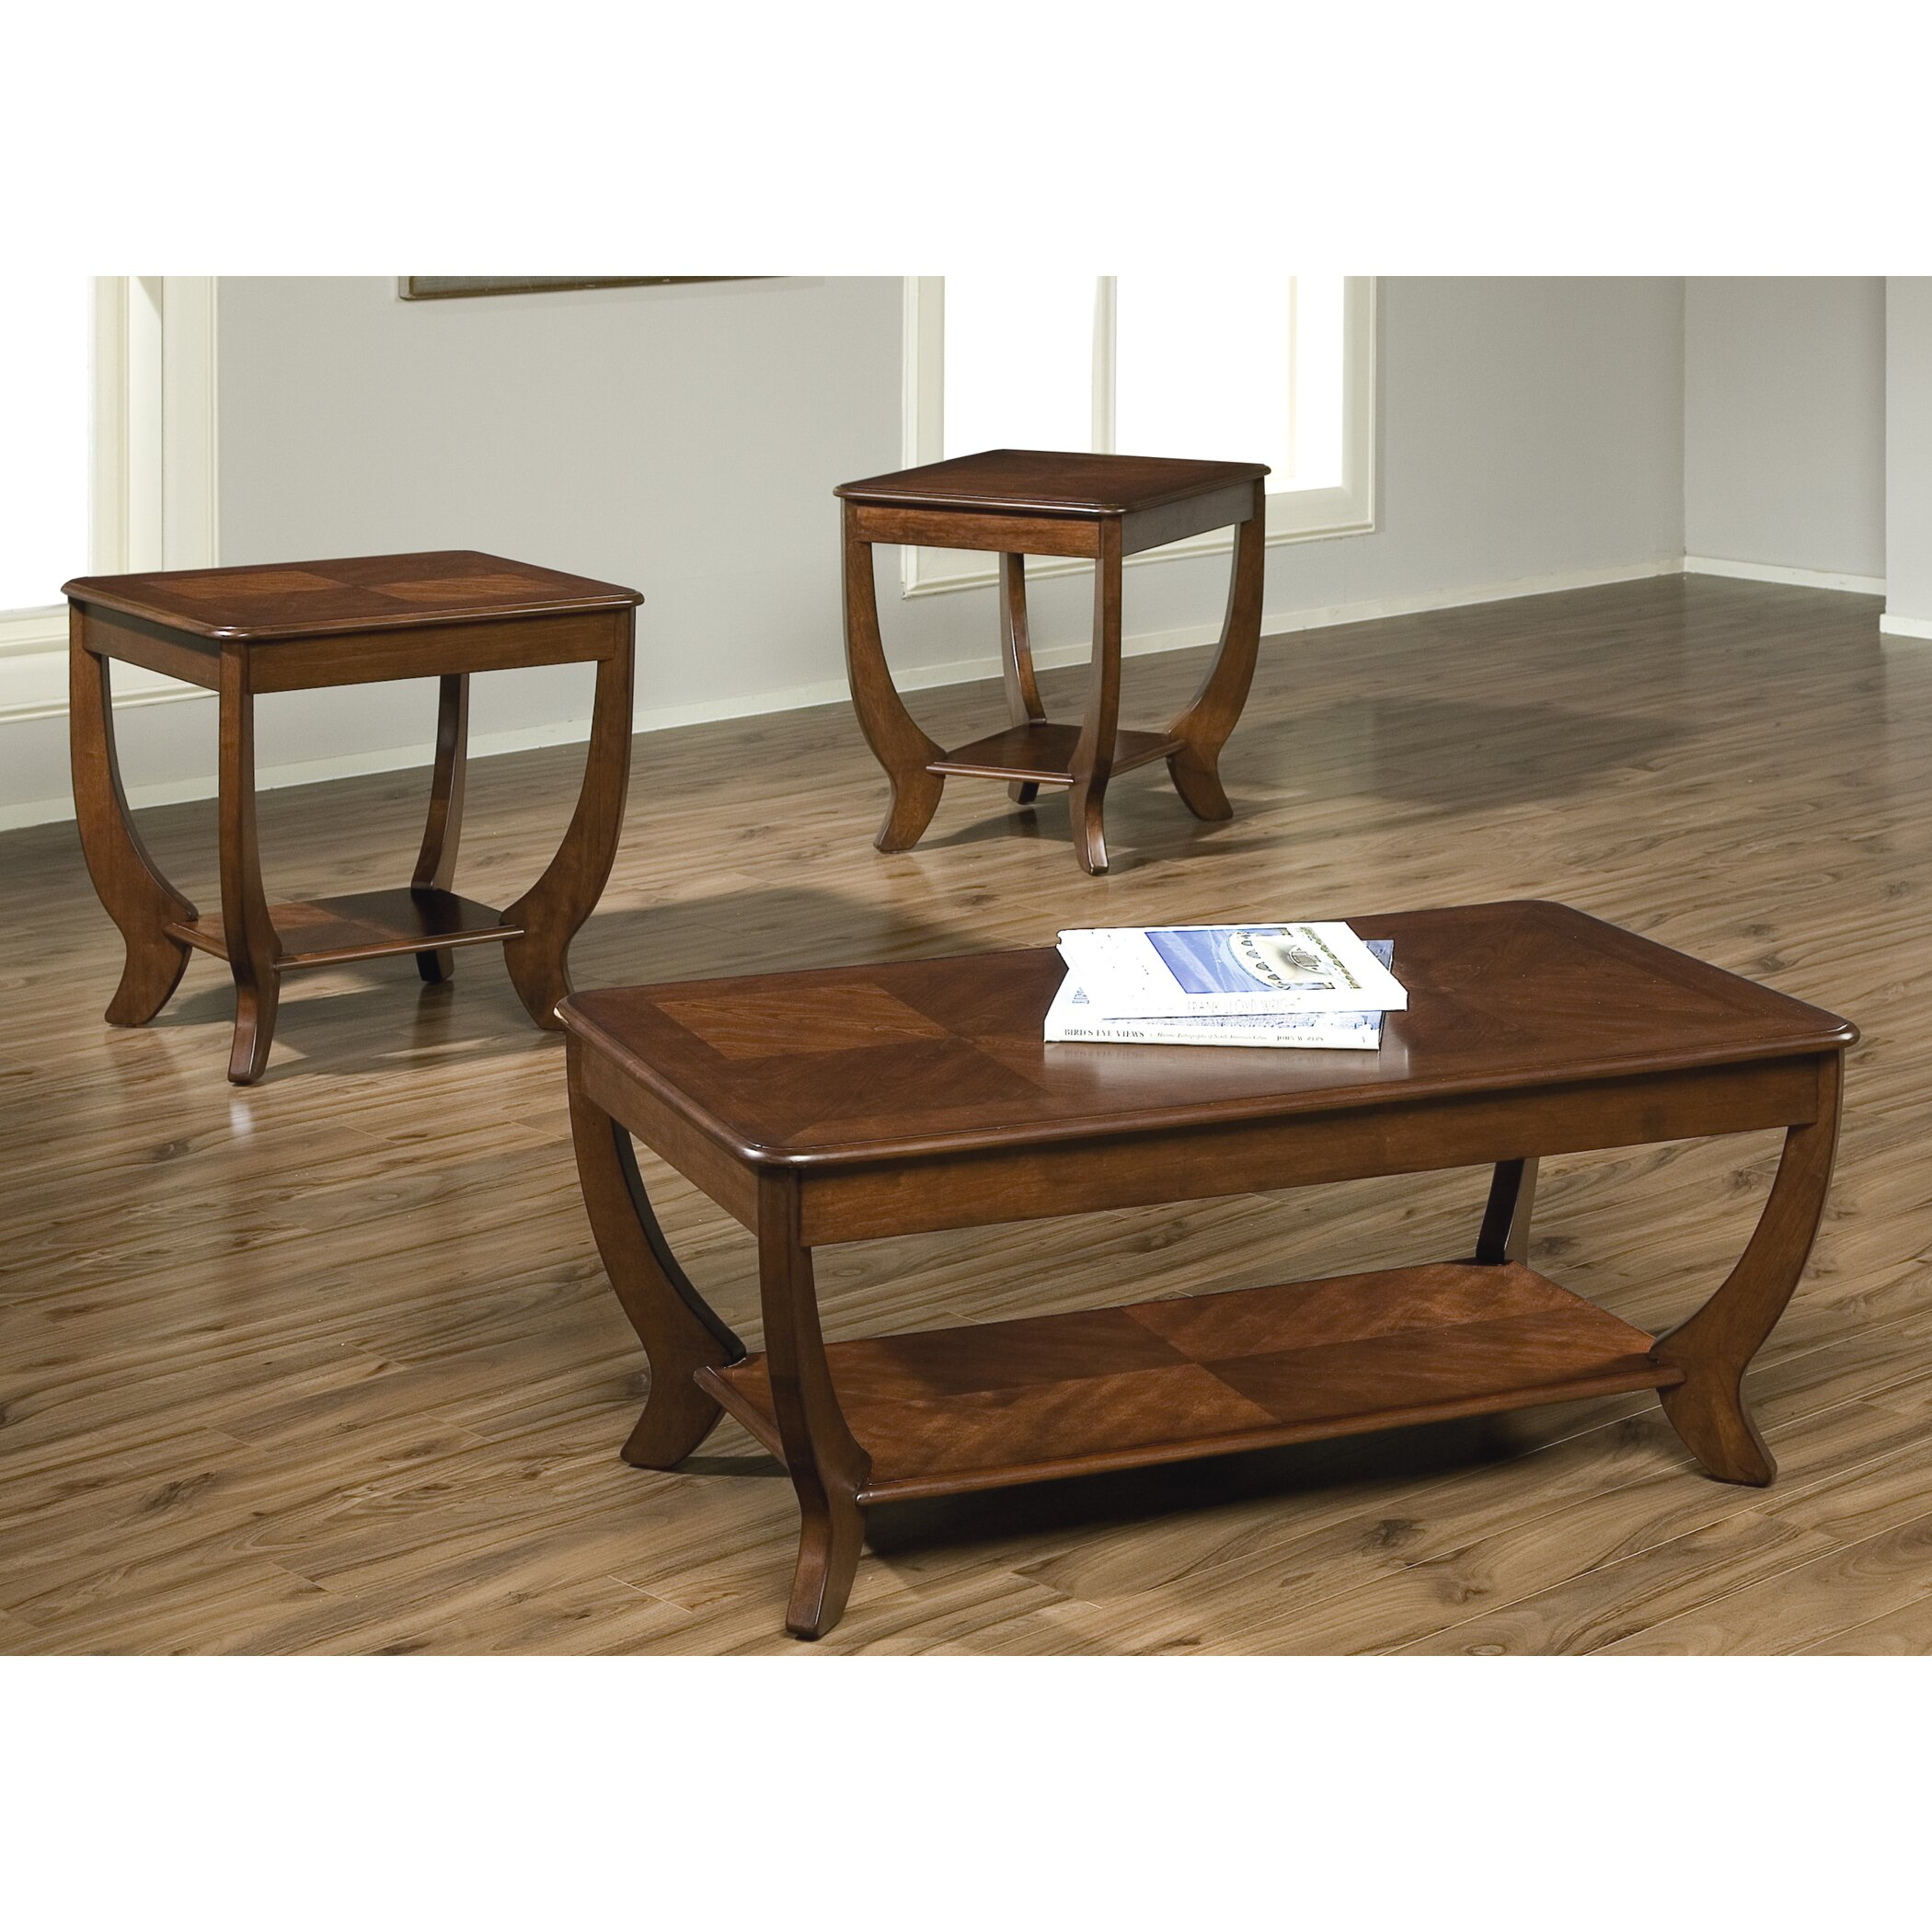 Rosalind Wheeler Pettigrew 3 Piece Coffee Table Set